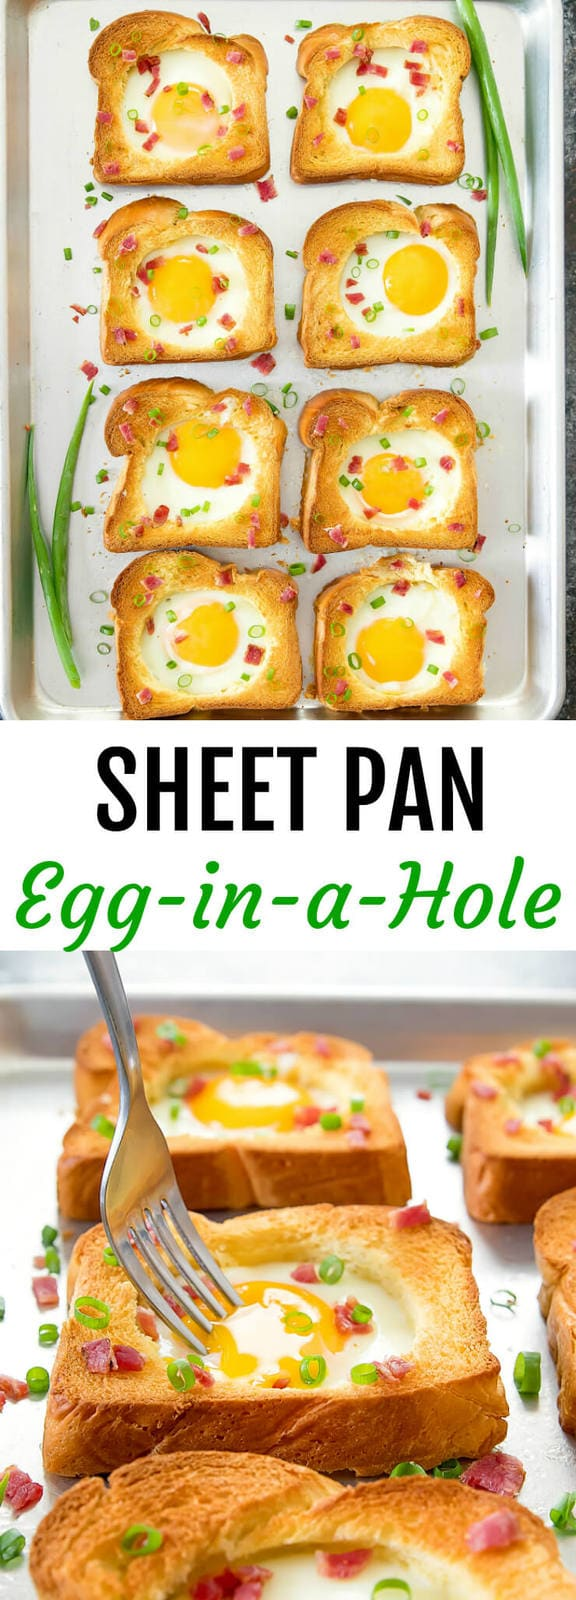 Sheet Pan Egg in a Hole Toast. An easy way to feed a large group or family, perfect for breakfast or bunch. Ready in less than 30 minutes.